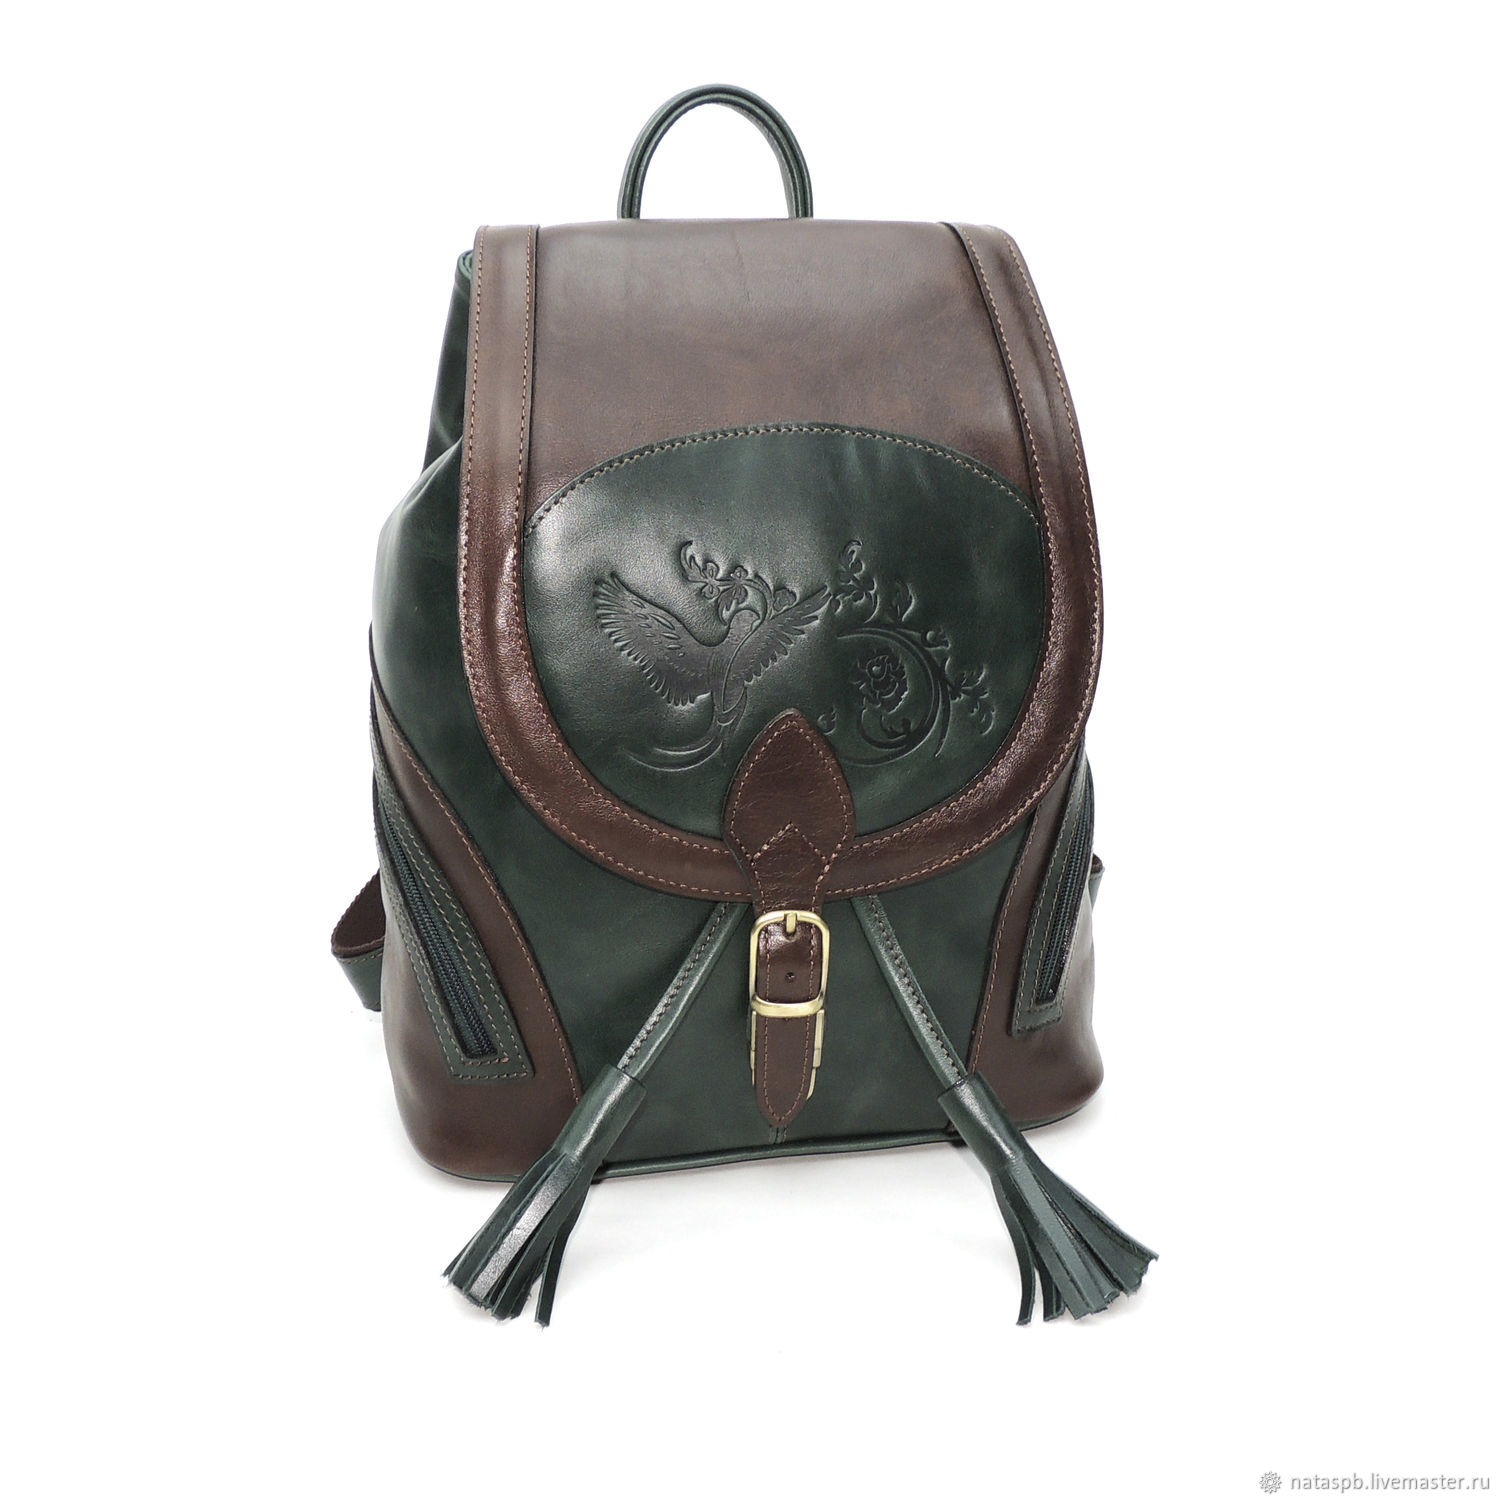 Backpack Women's Leather Brown Green Stasia Mod. R. 50-632, Backpacks, St. Petersburg,  Фото №1